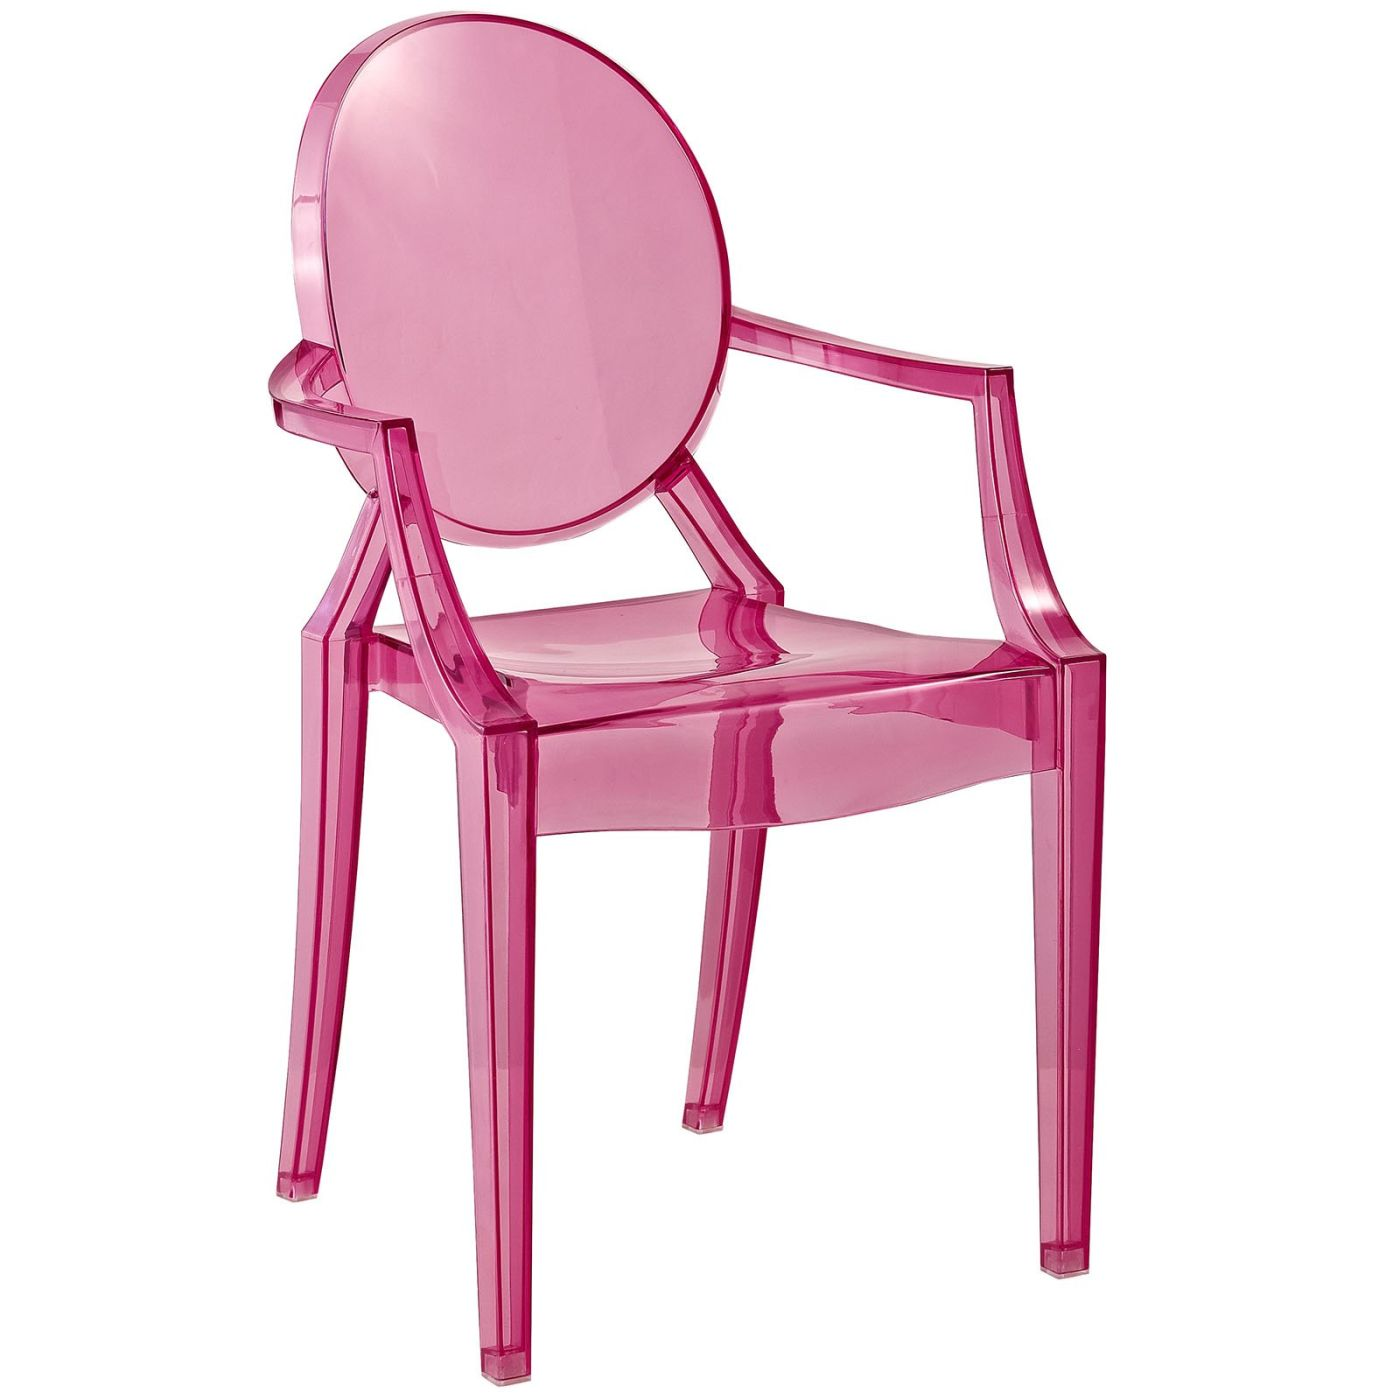 Casper Ghost Kids Chair Pink Furniture ...